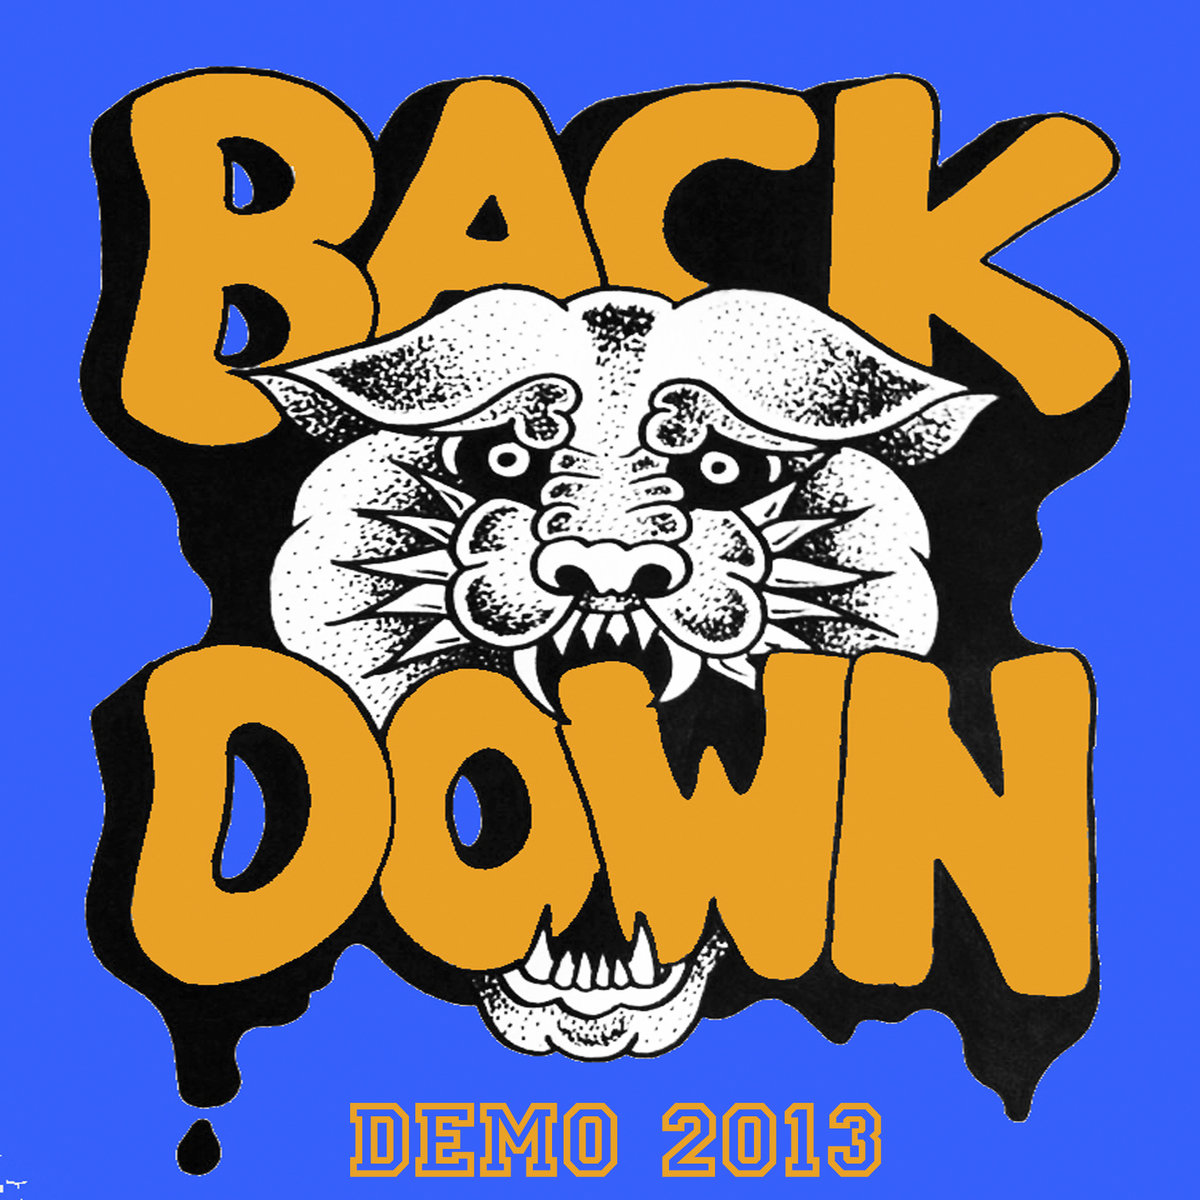 Back down clipart #3